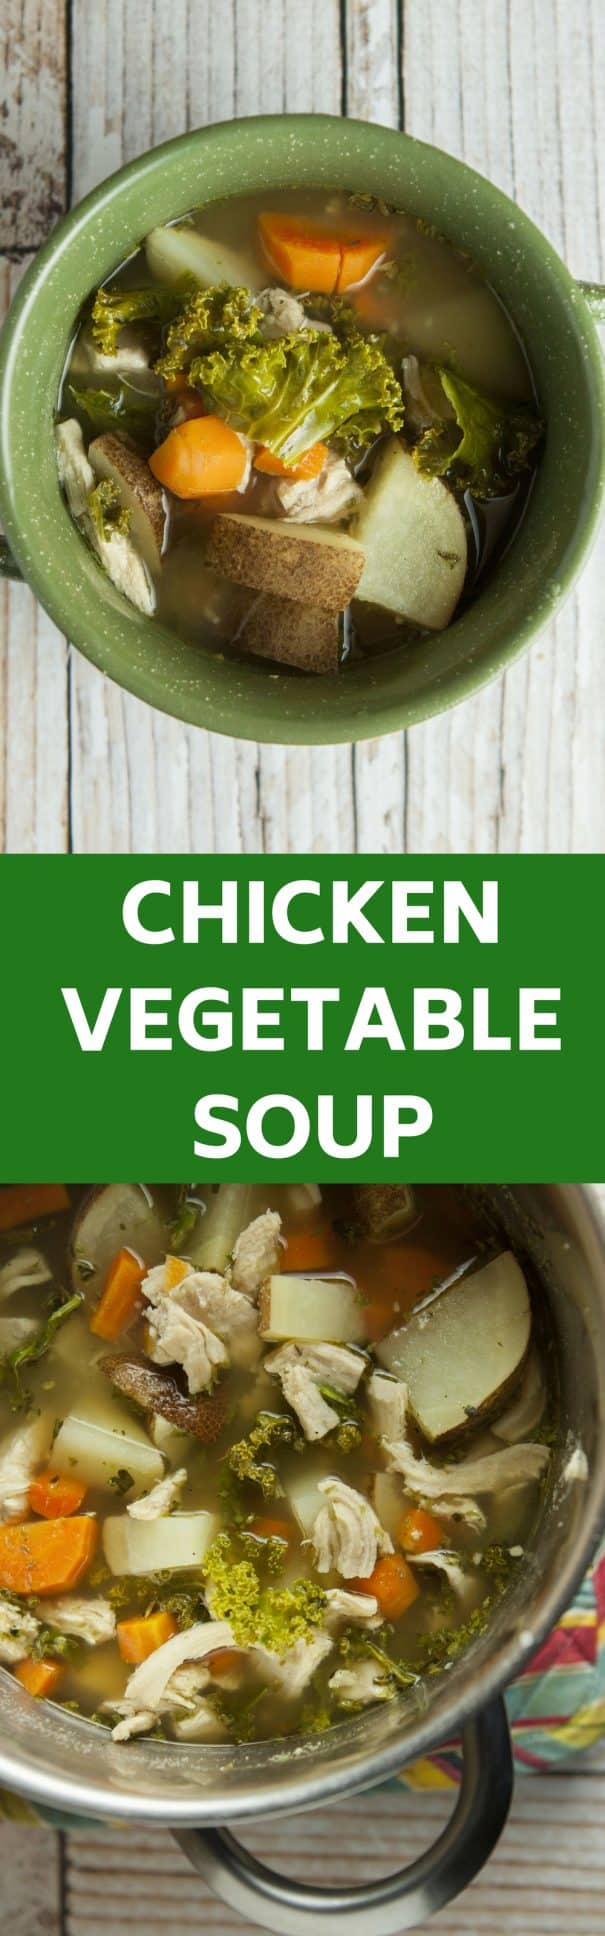 A easy Chicken Vegetable Soup recipe that is ready in 35 minutes. This is my family's favorite Winter soup that uses fresh vegetables!  We use Instant Potatoes to make the broth more creamy!